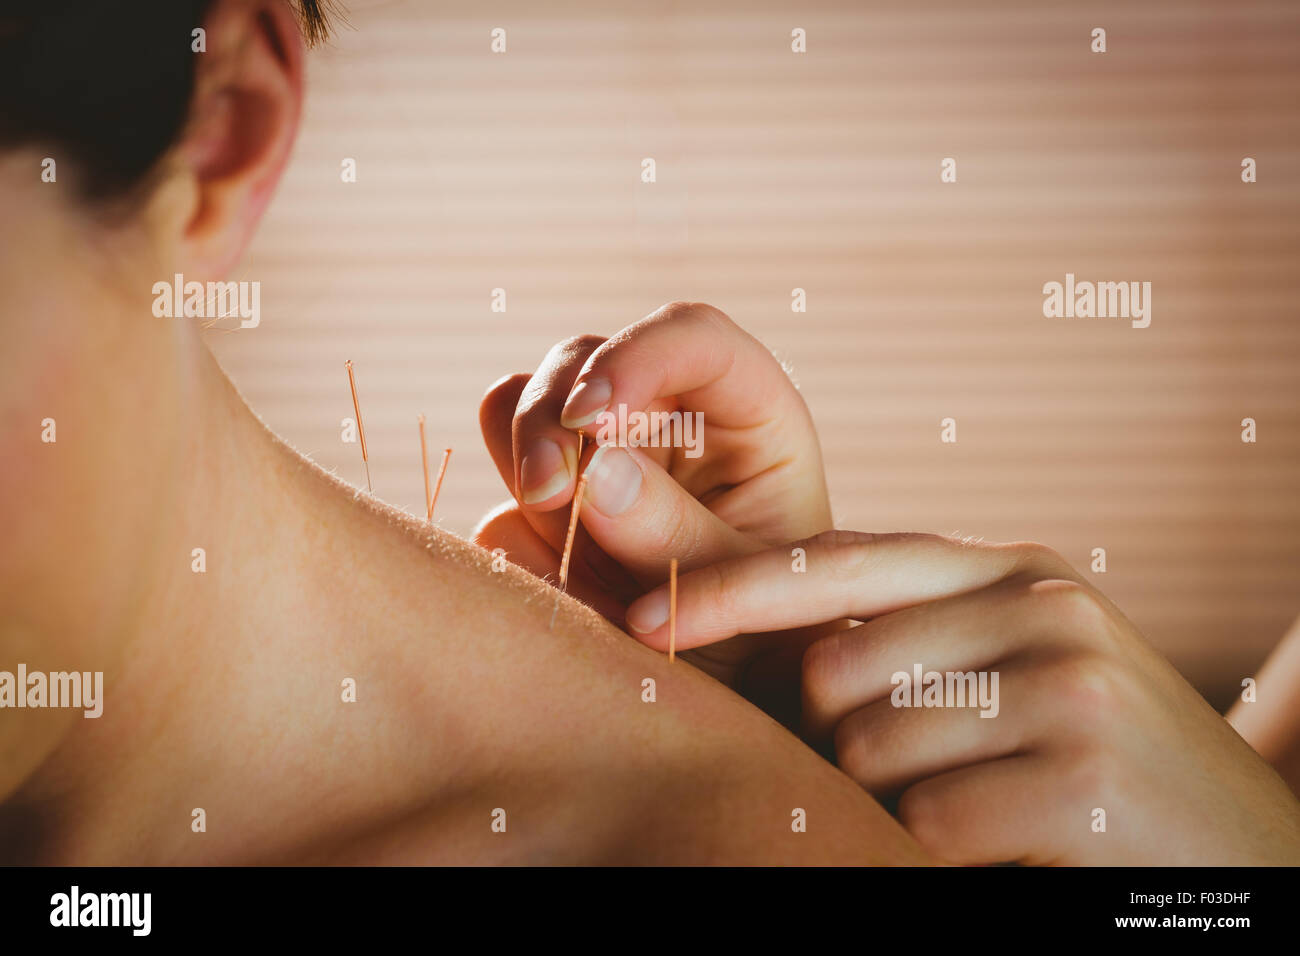 Young woman getting acupuncture treatment - Stock Image